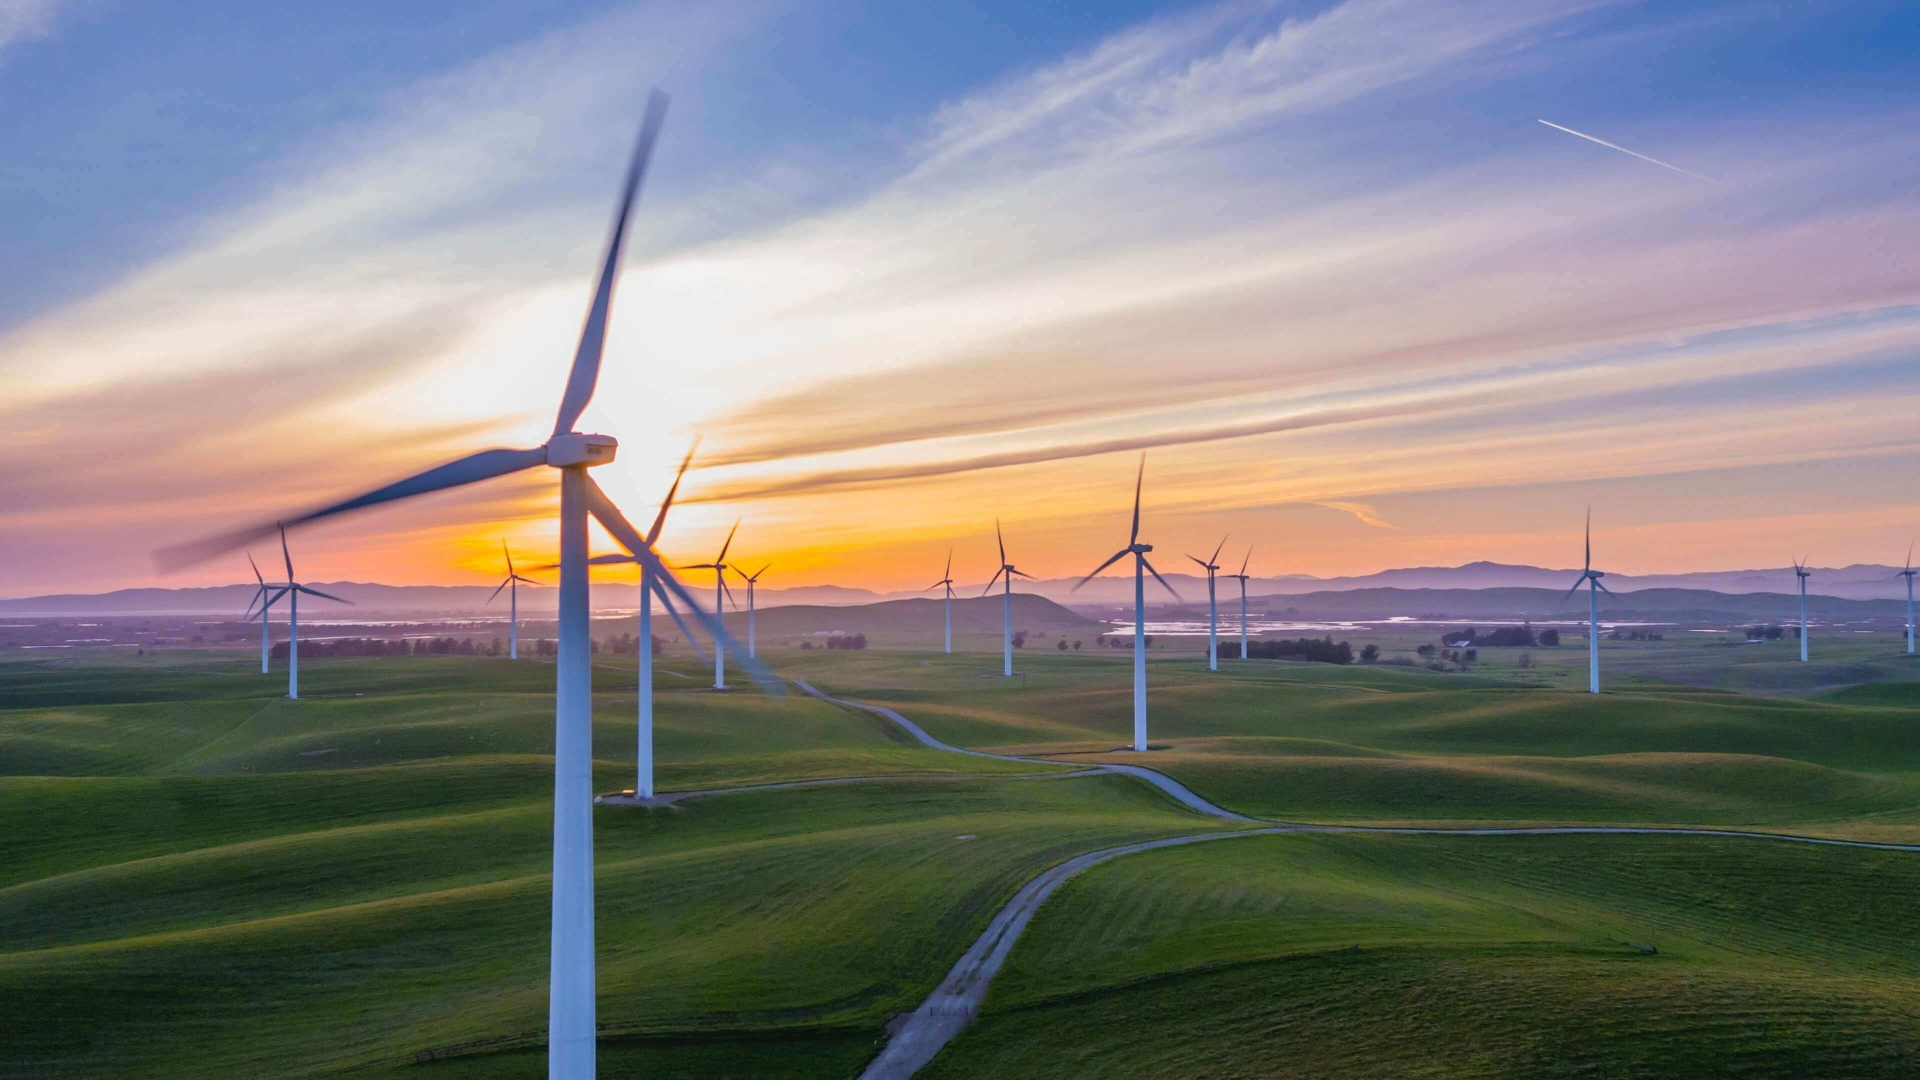 Trung Nam Group to set 16 wind turbines in service in Ninh Thuan